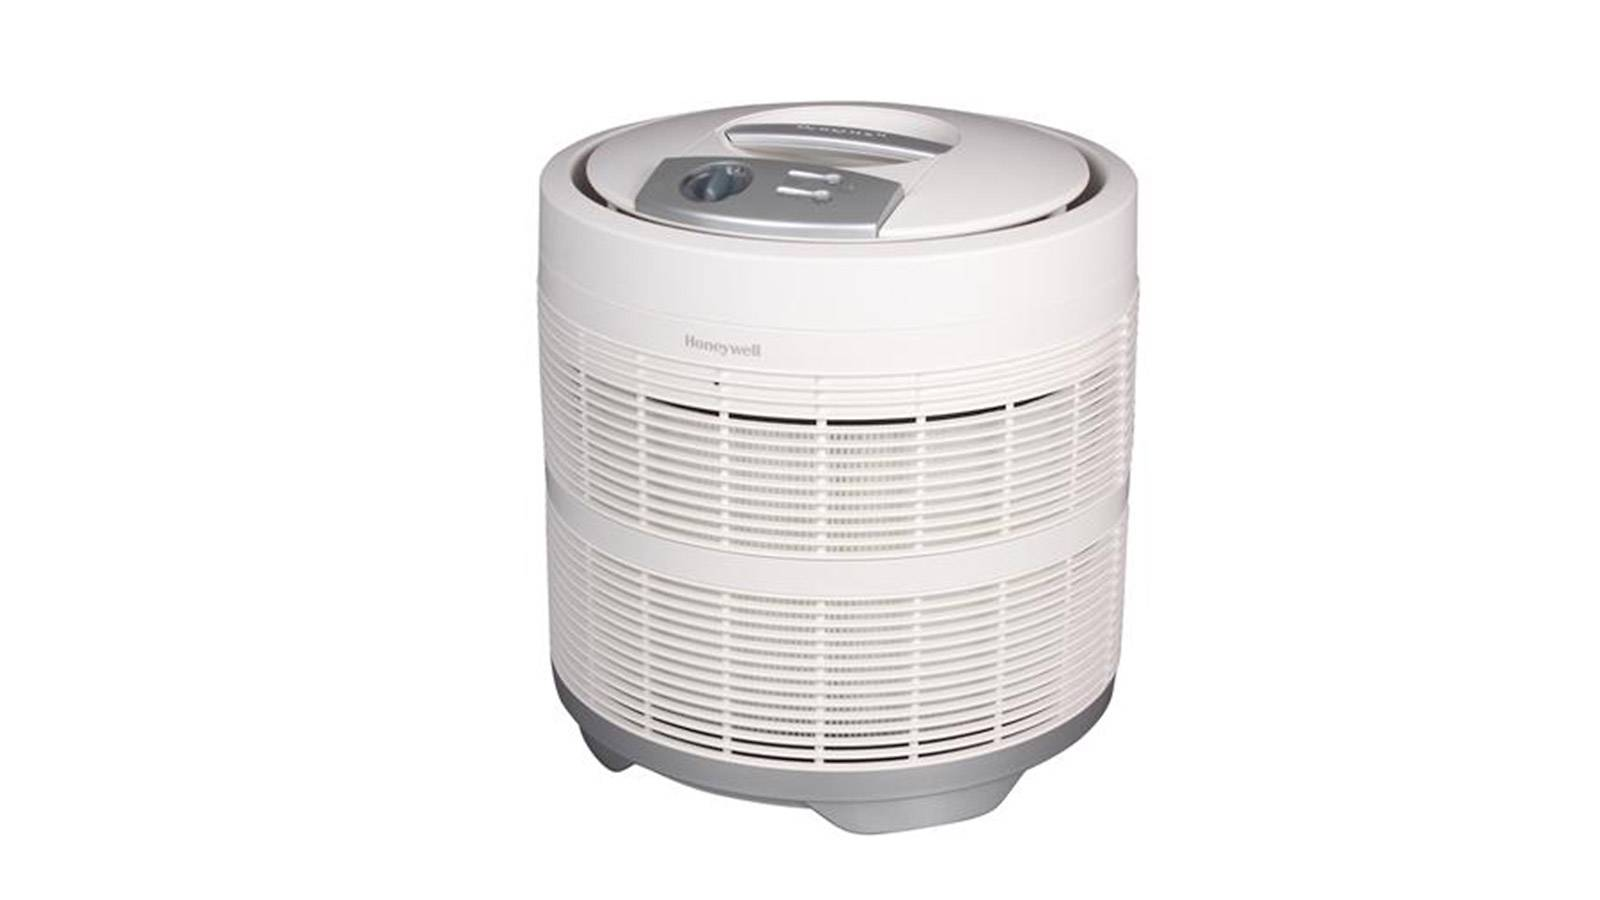 Honeywell 50250-S True HEPA Allergen Remover